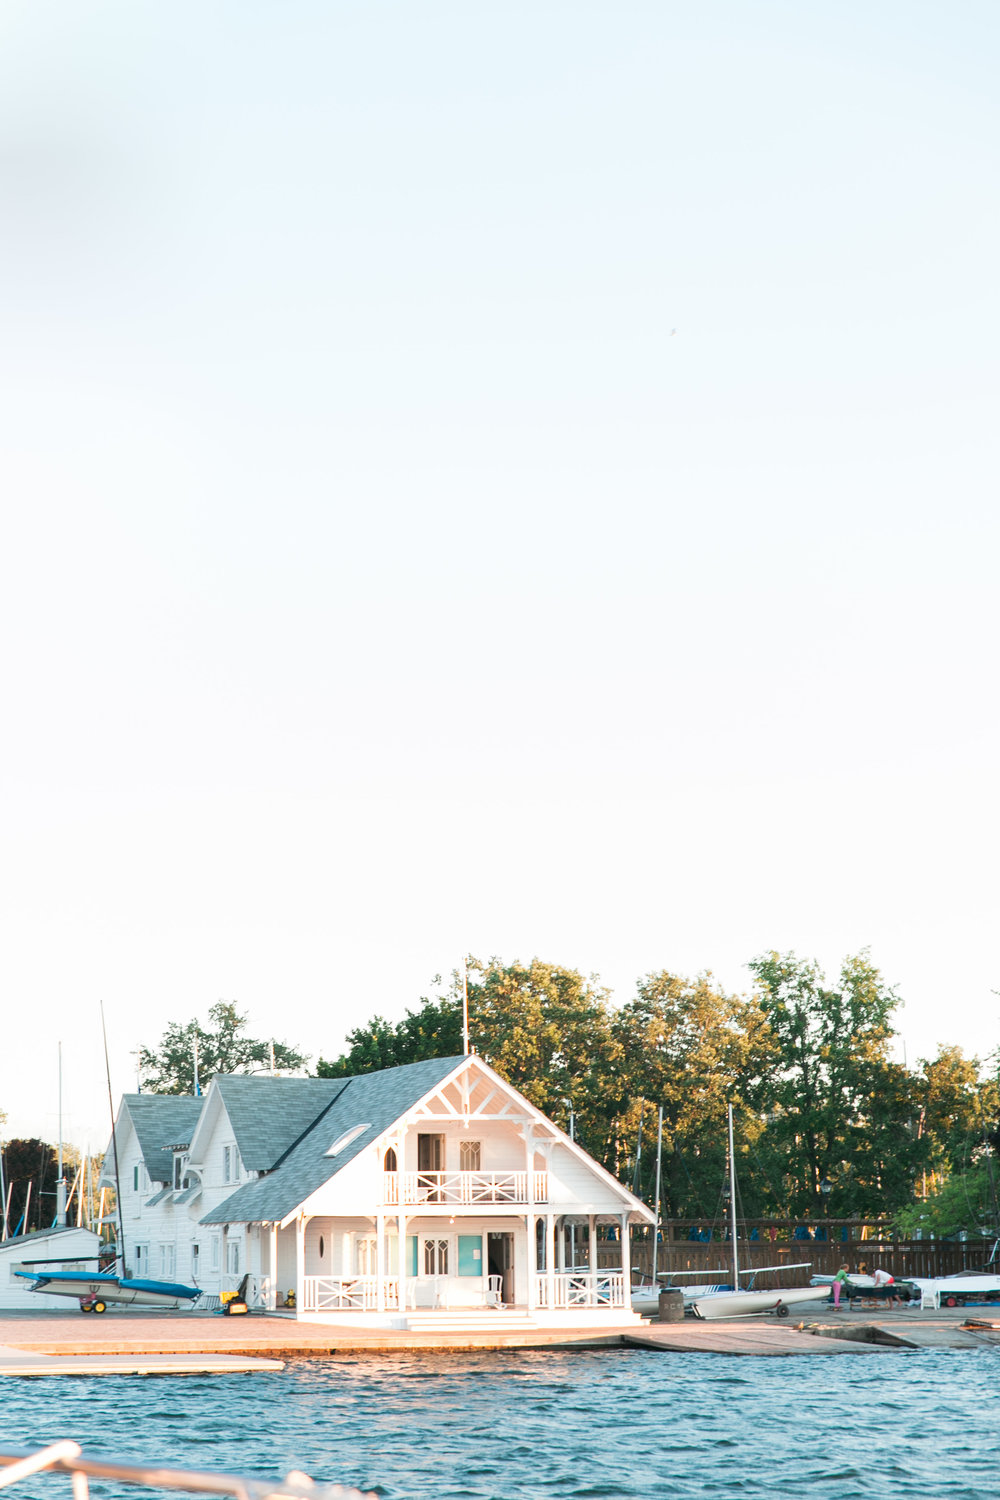 The Royal Canadian Yacht Club boathouse